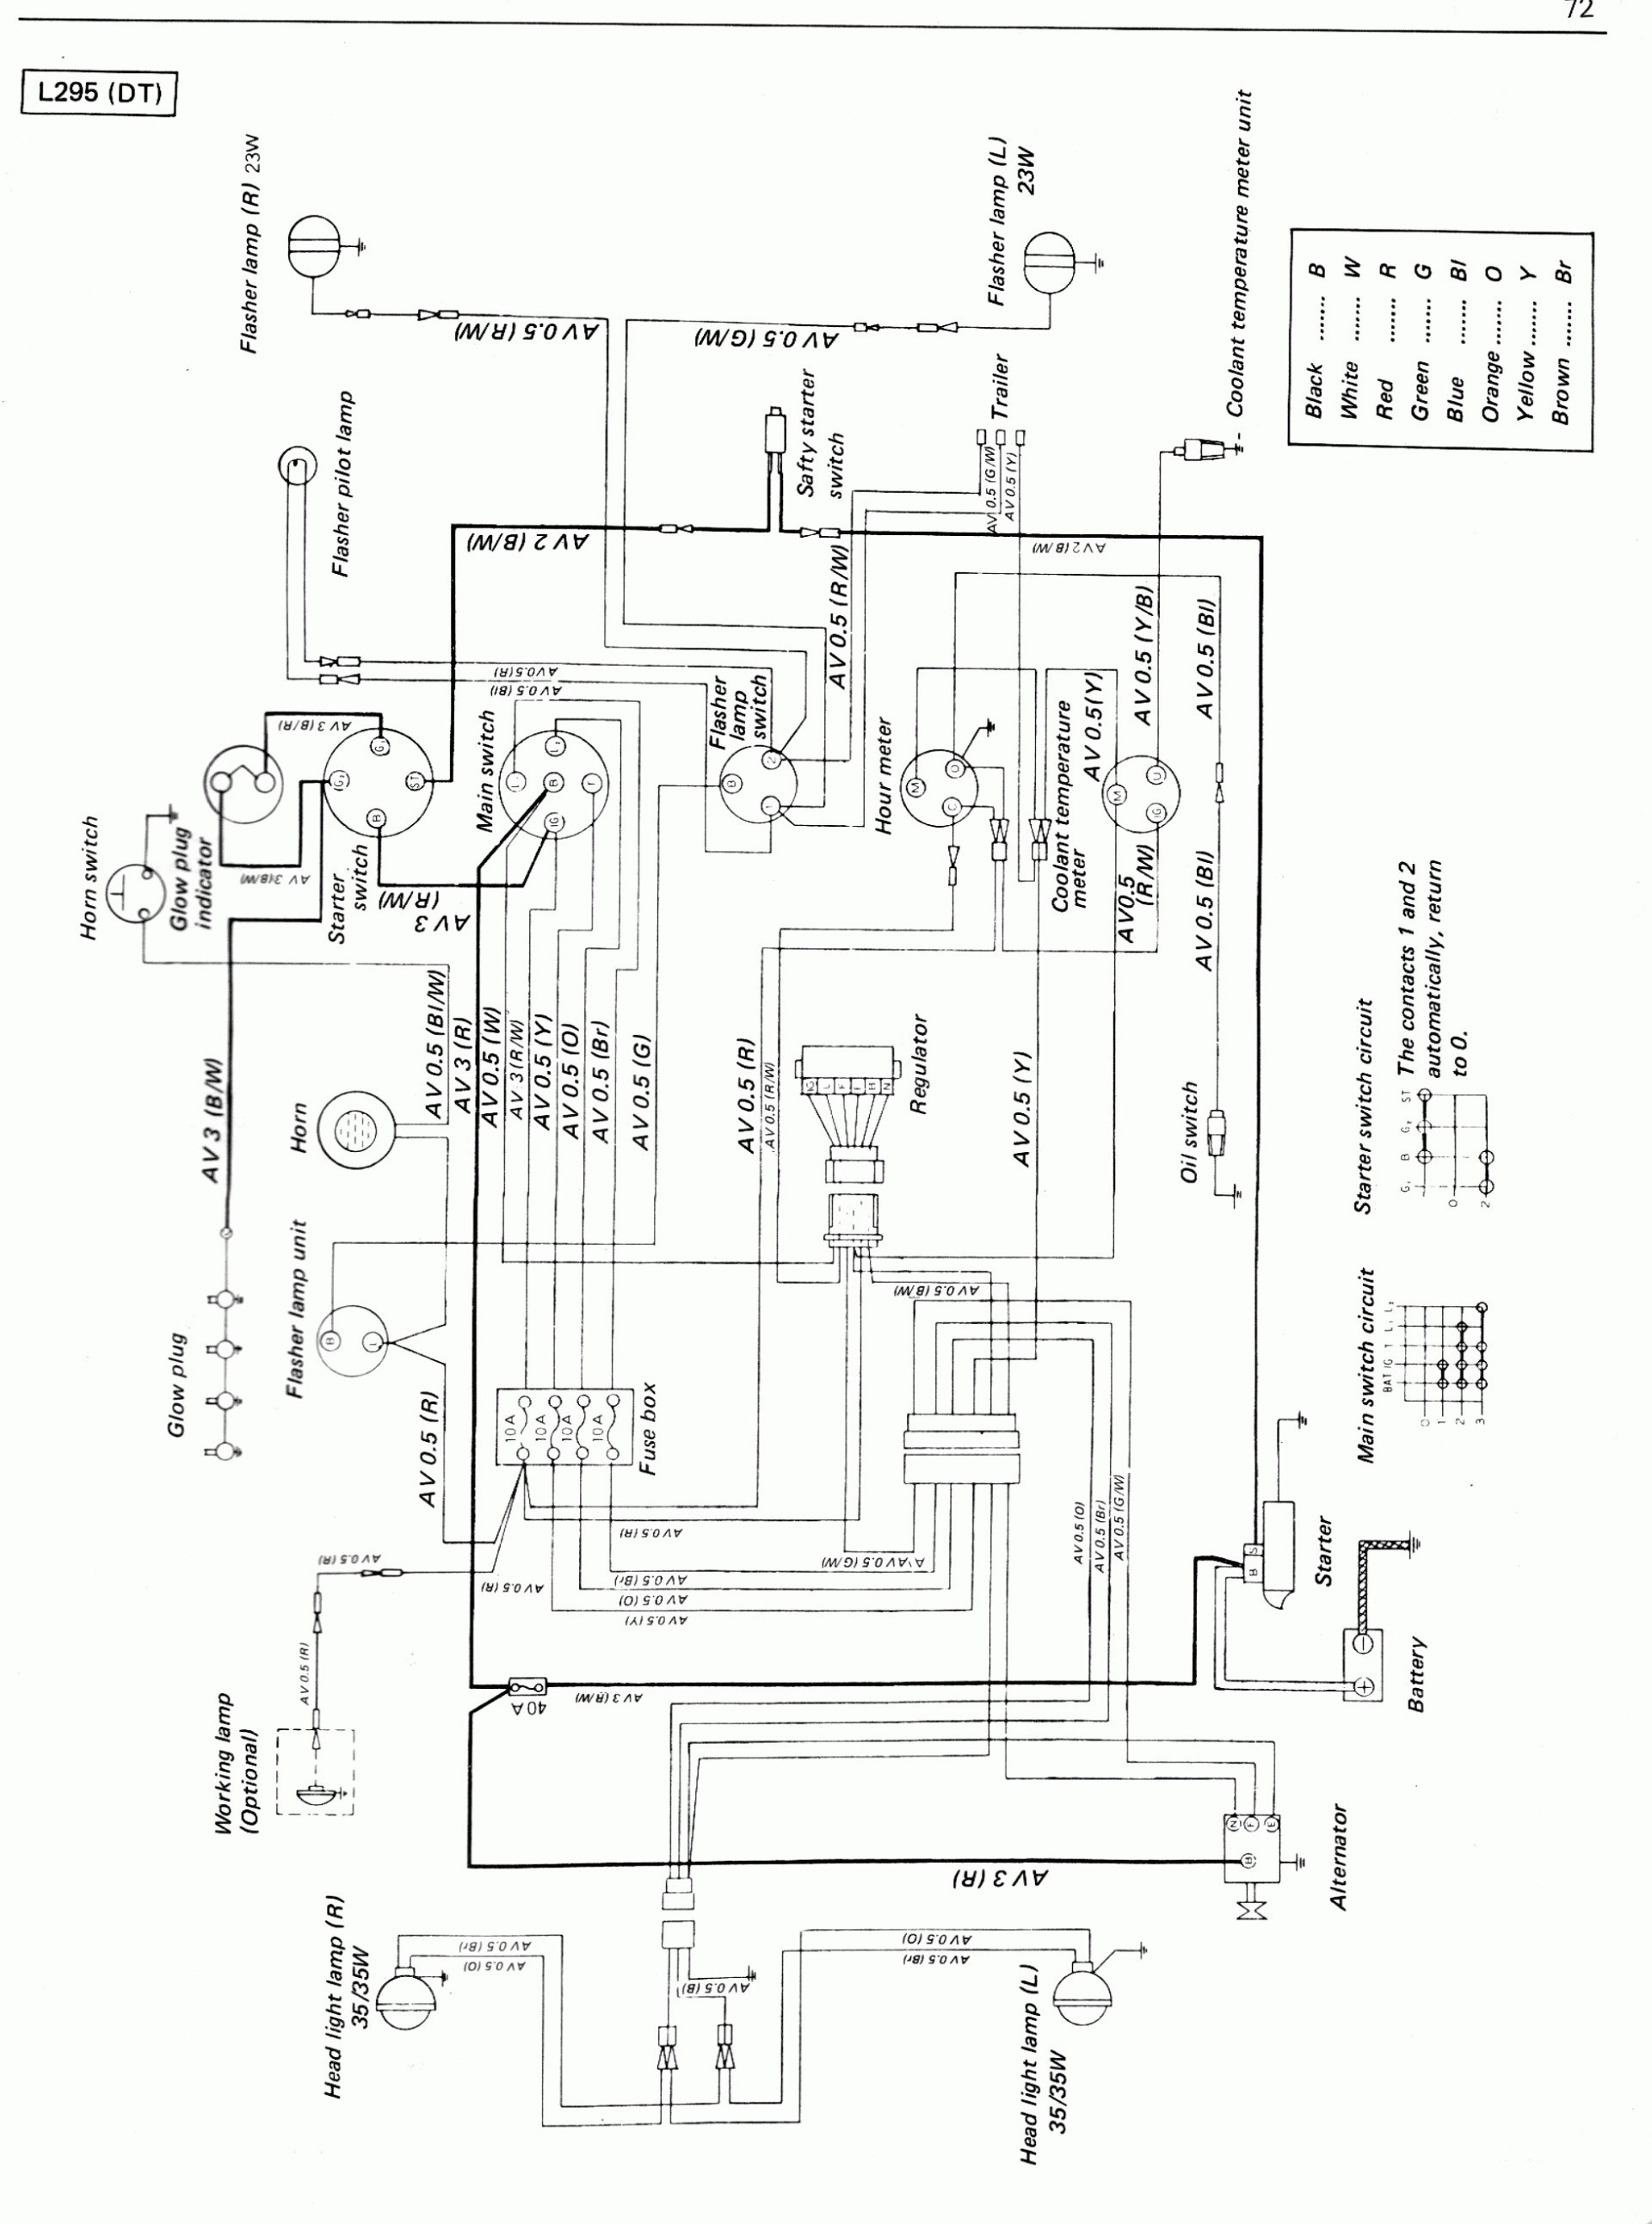 hight resolution of kubota wiring diagrams l245dt diagram database reg kubota l245 engine diagram